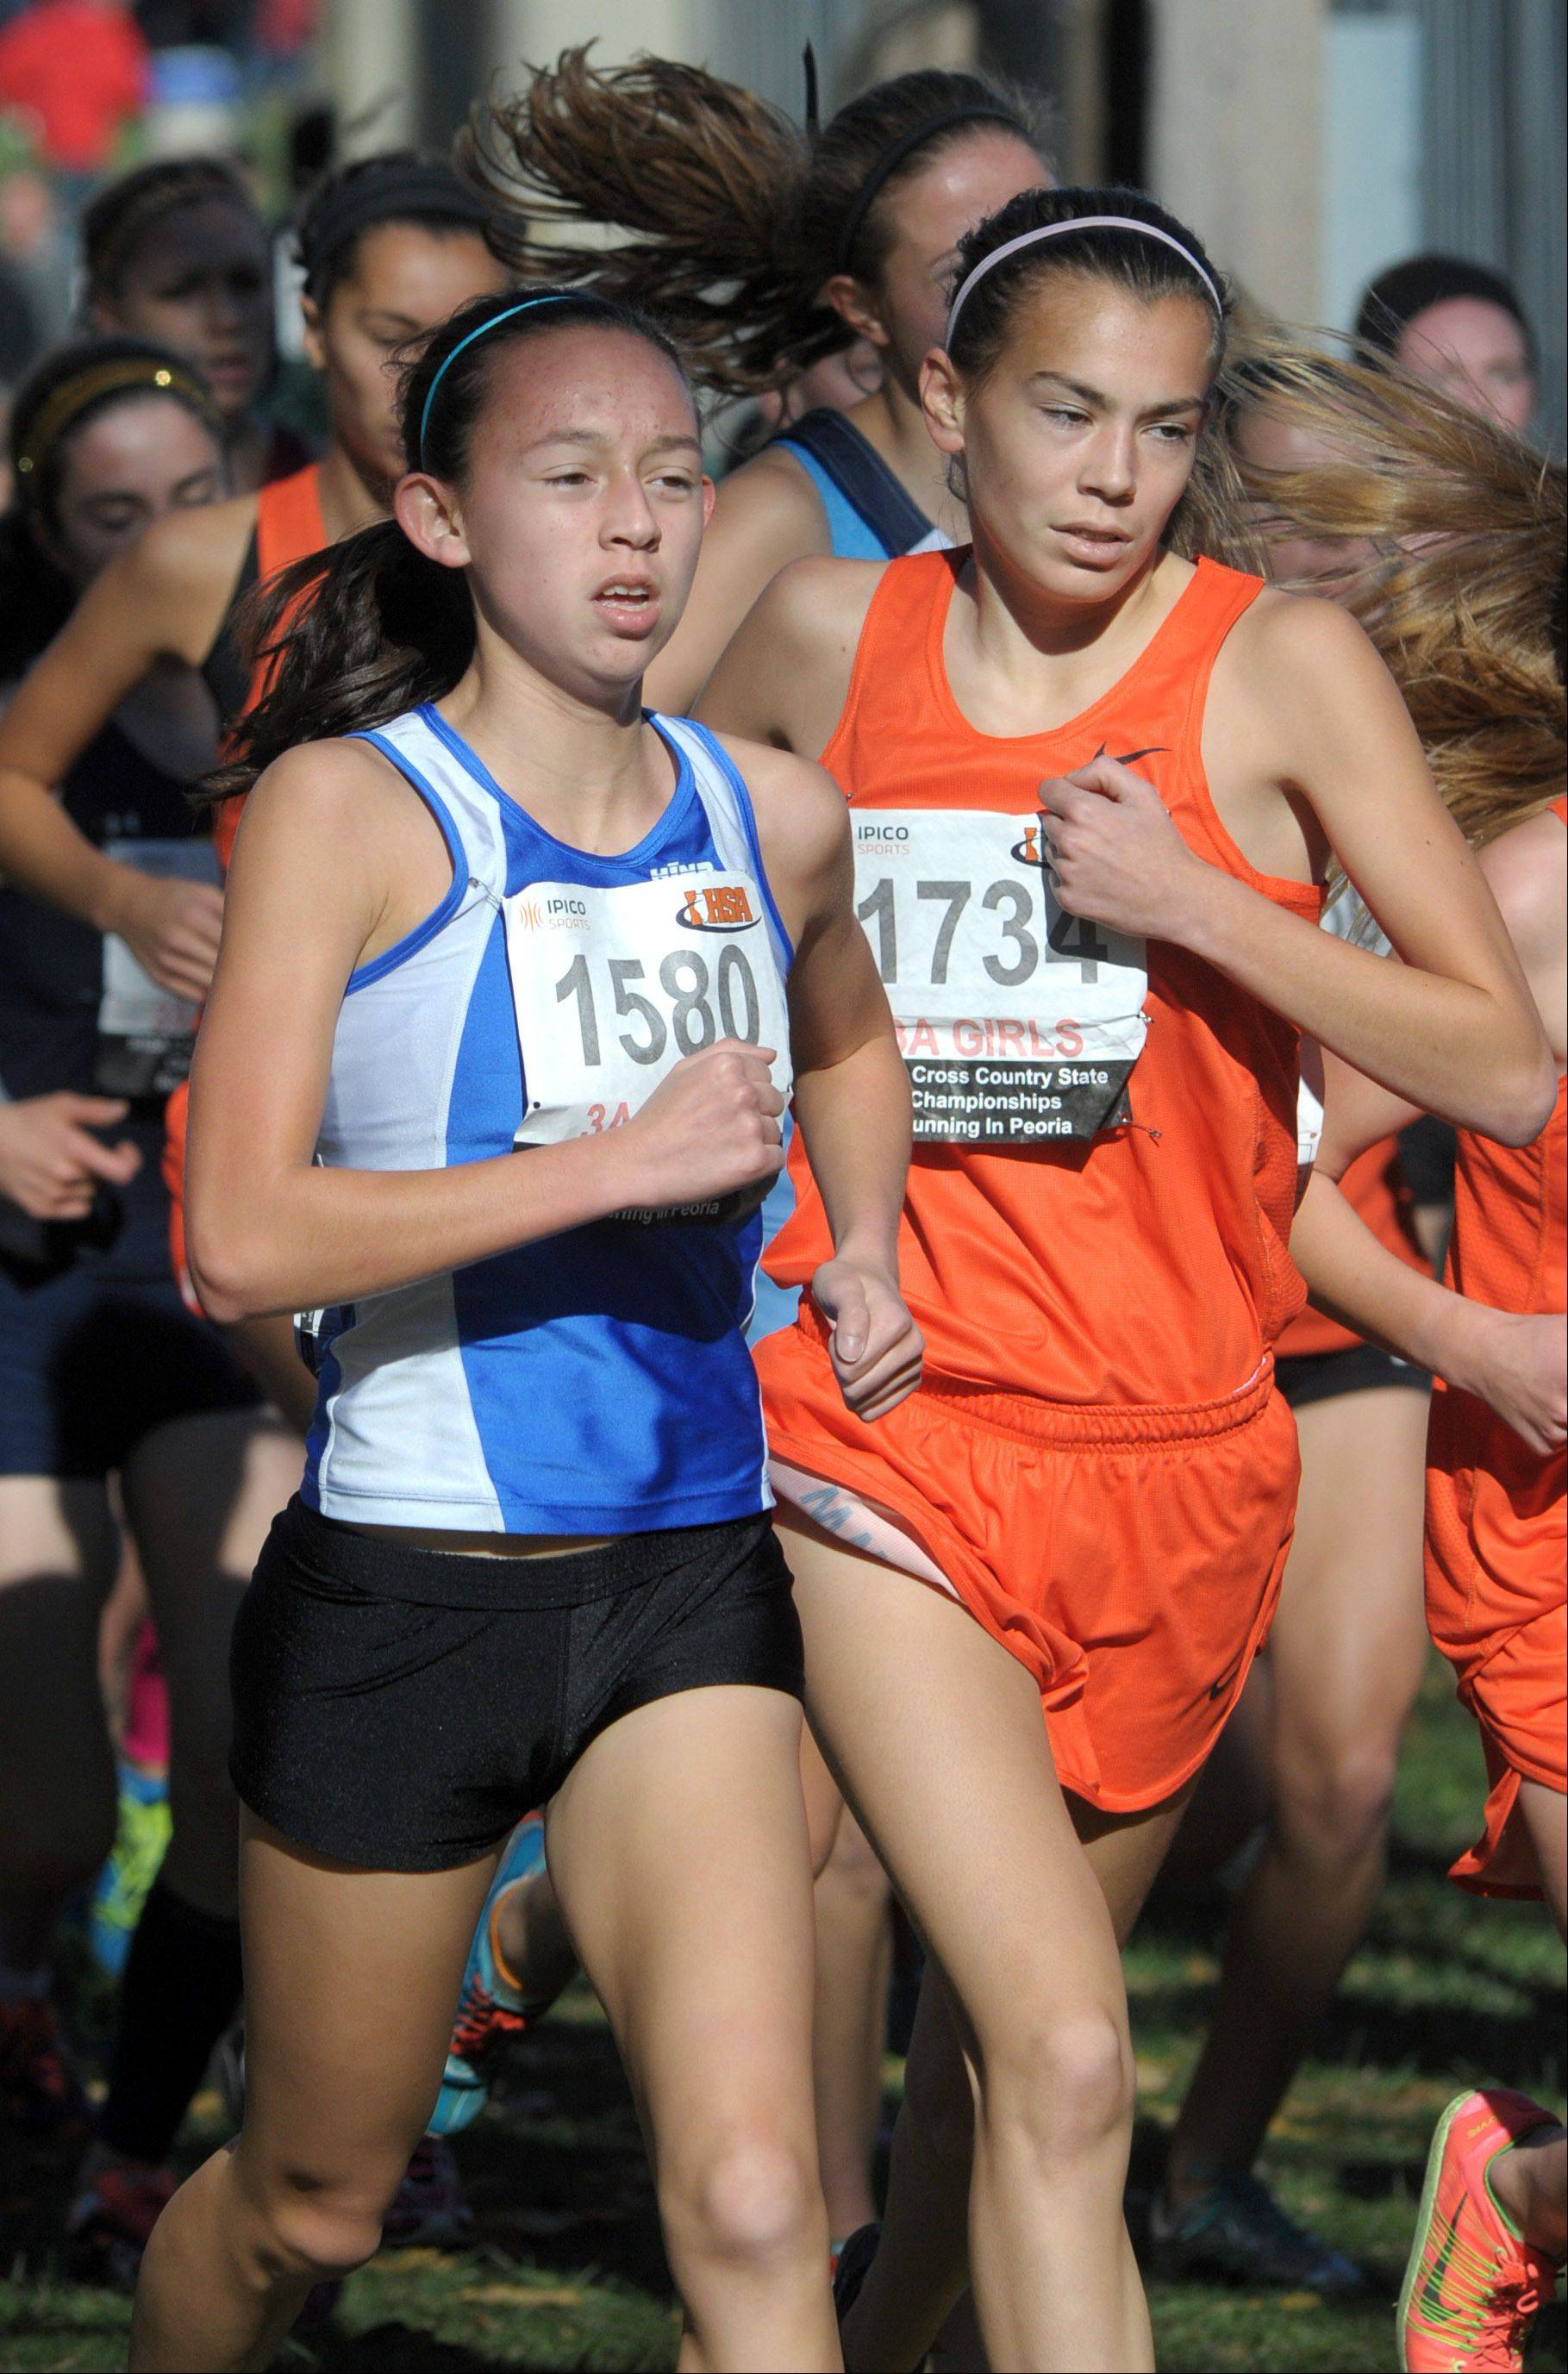 Lake Zurich's Kristie Houghton (1580) and Wheaton Warrenville South's Natalia Boettcher (7134) compete in the Class 3A IHSA cross country state finals at Detweiller Park in Peoria on Saturday, November 9.